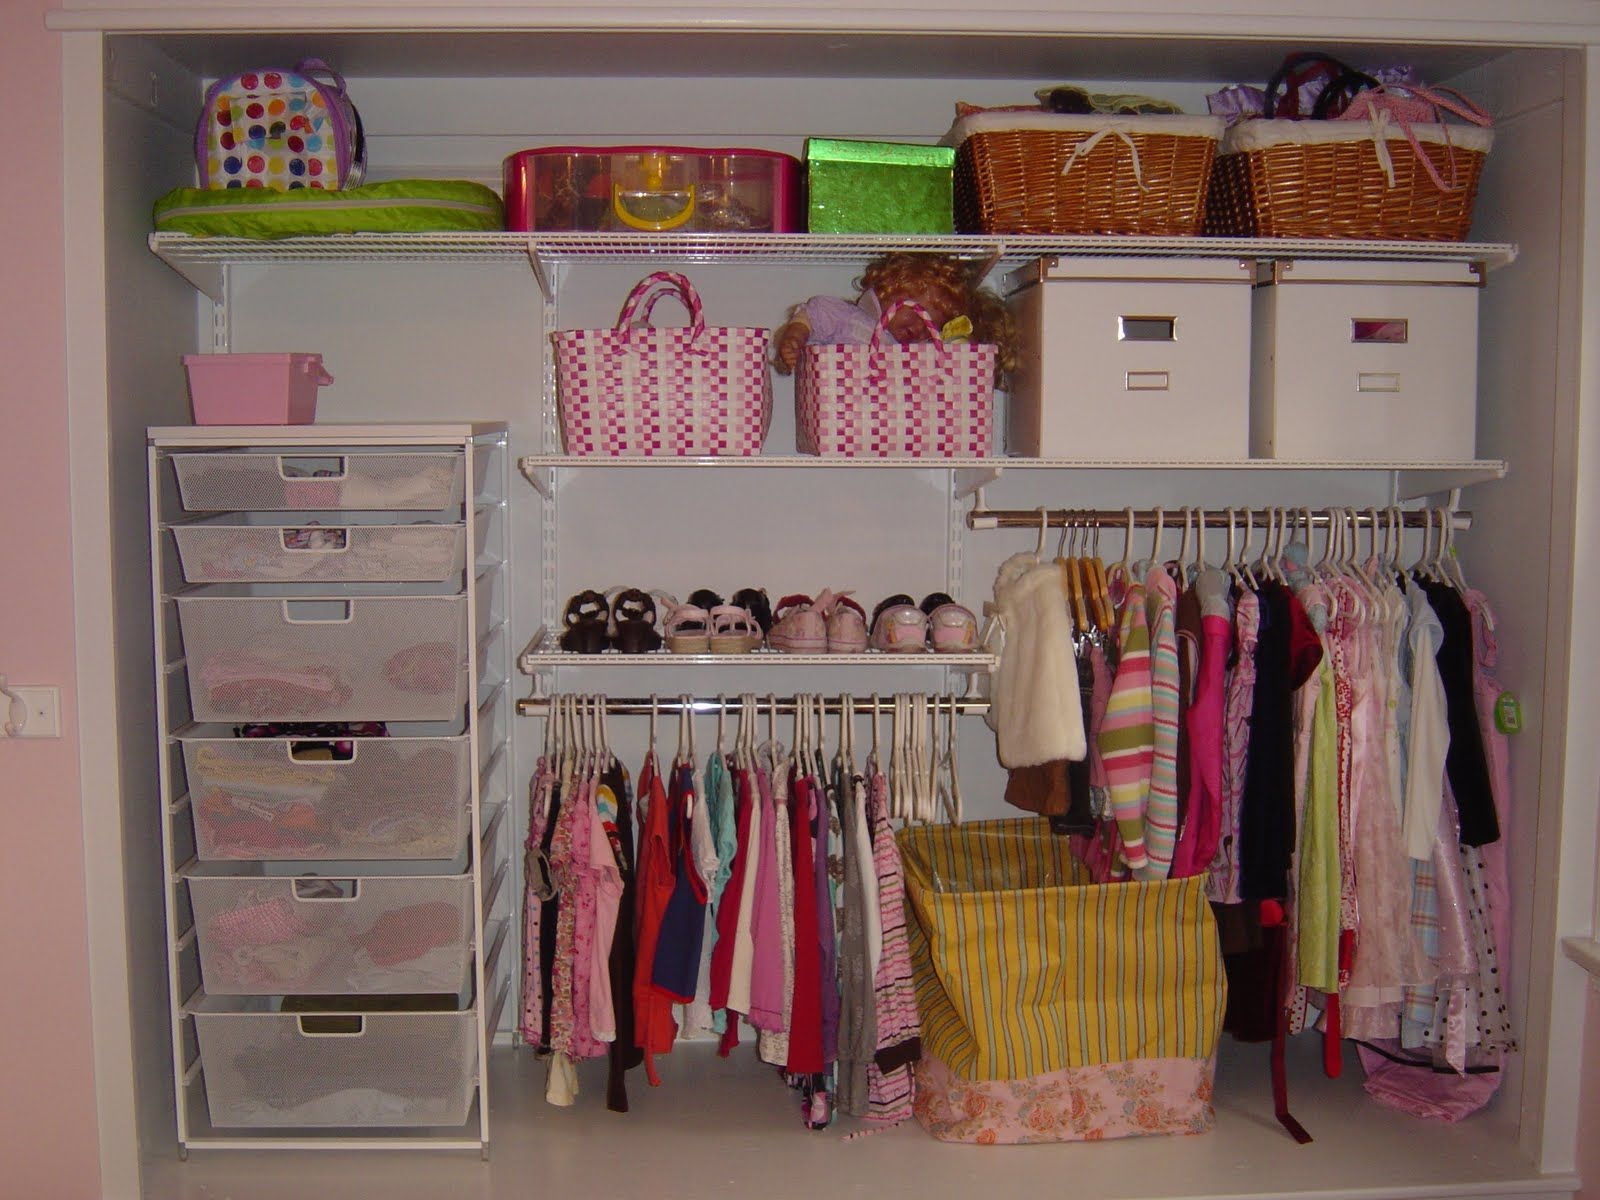 Here is another closet idea if your space is large enough and especially if your little girl has longer dresses to hang. You could even add another shoe ... : another closet storage  - Aquiesqueretaro.Com